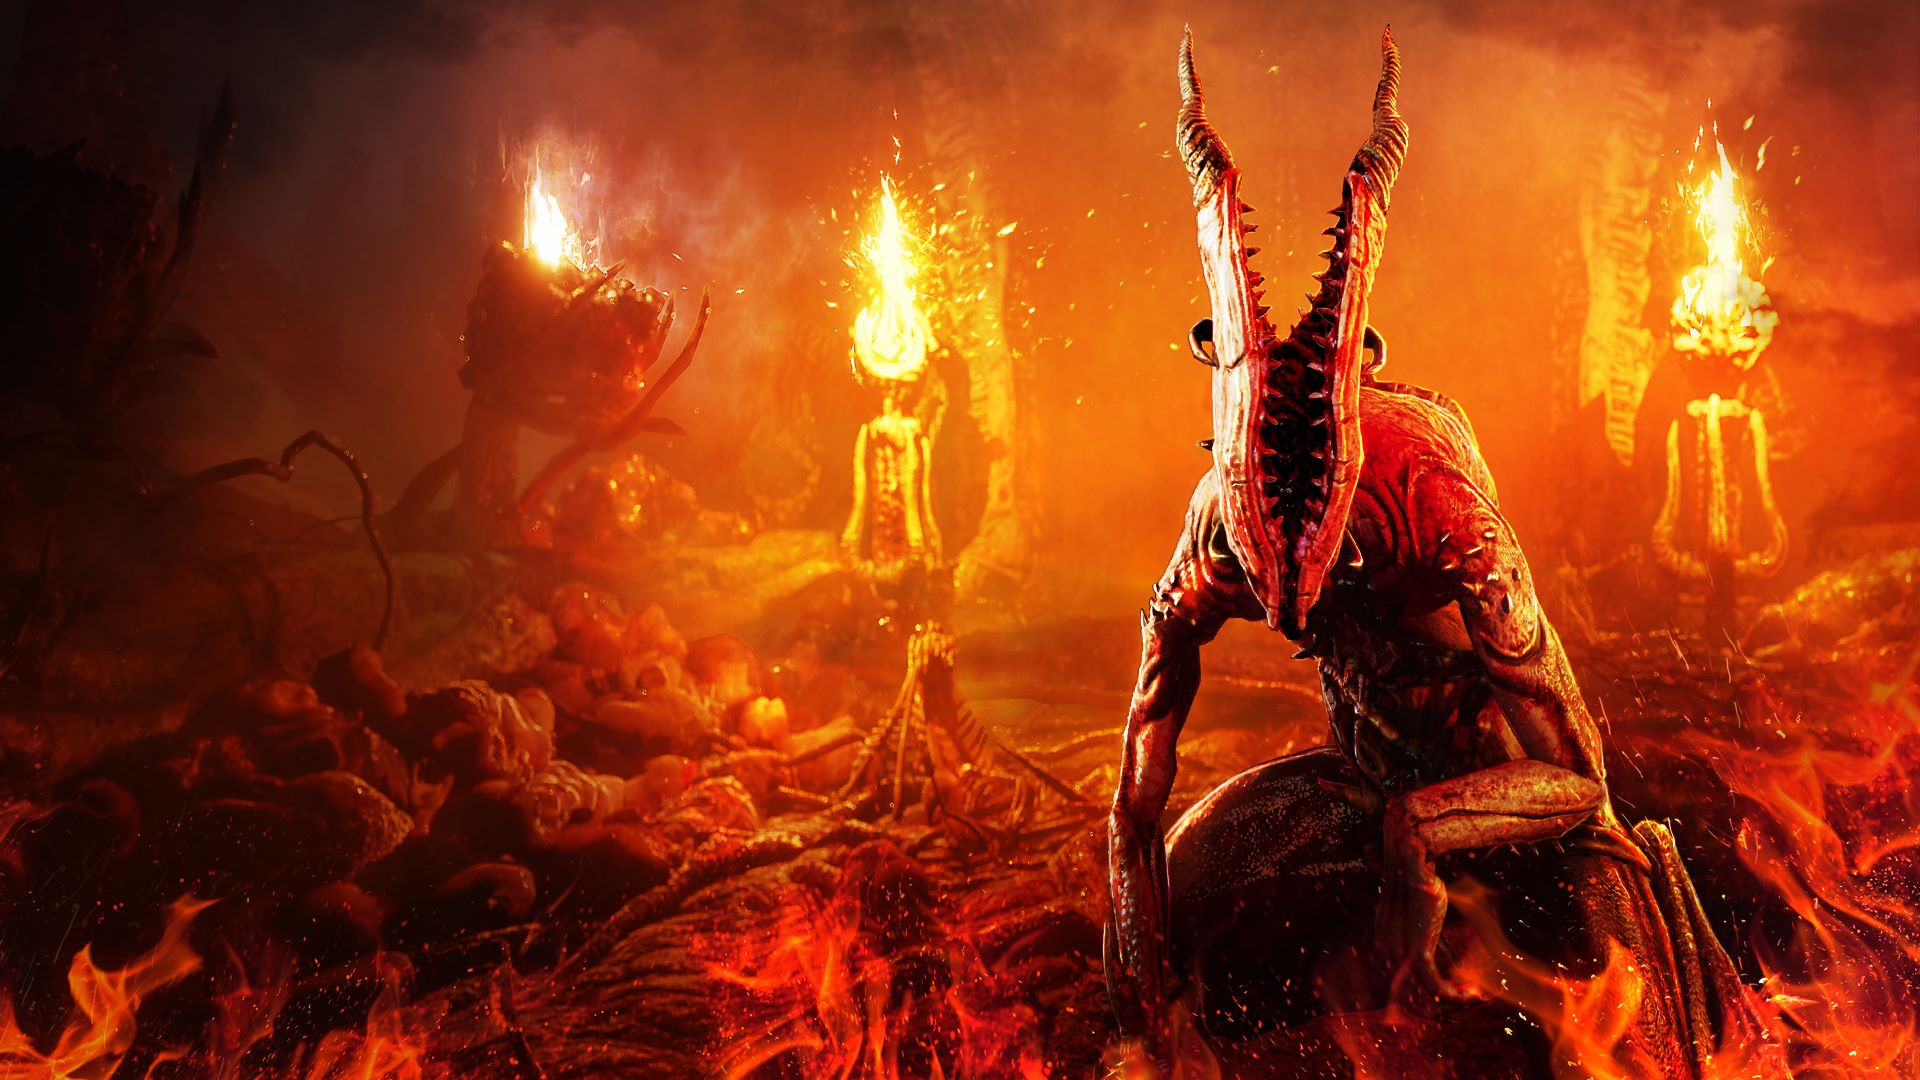 Agony Hell is a hollow shell 4